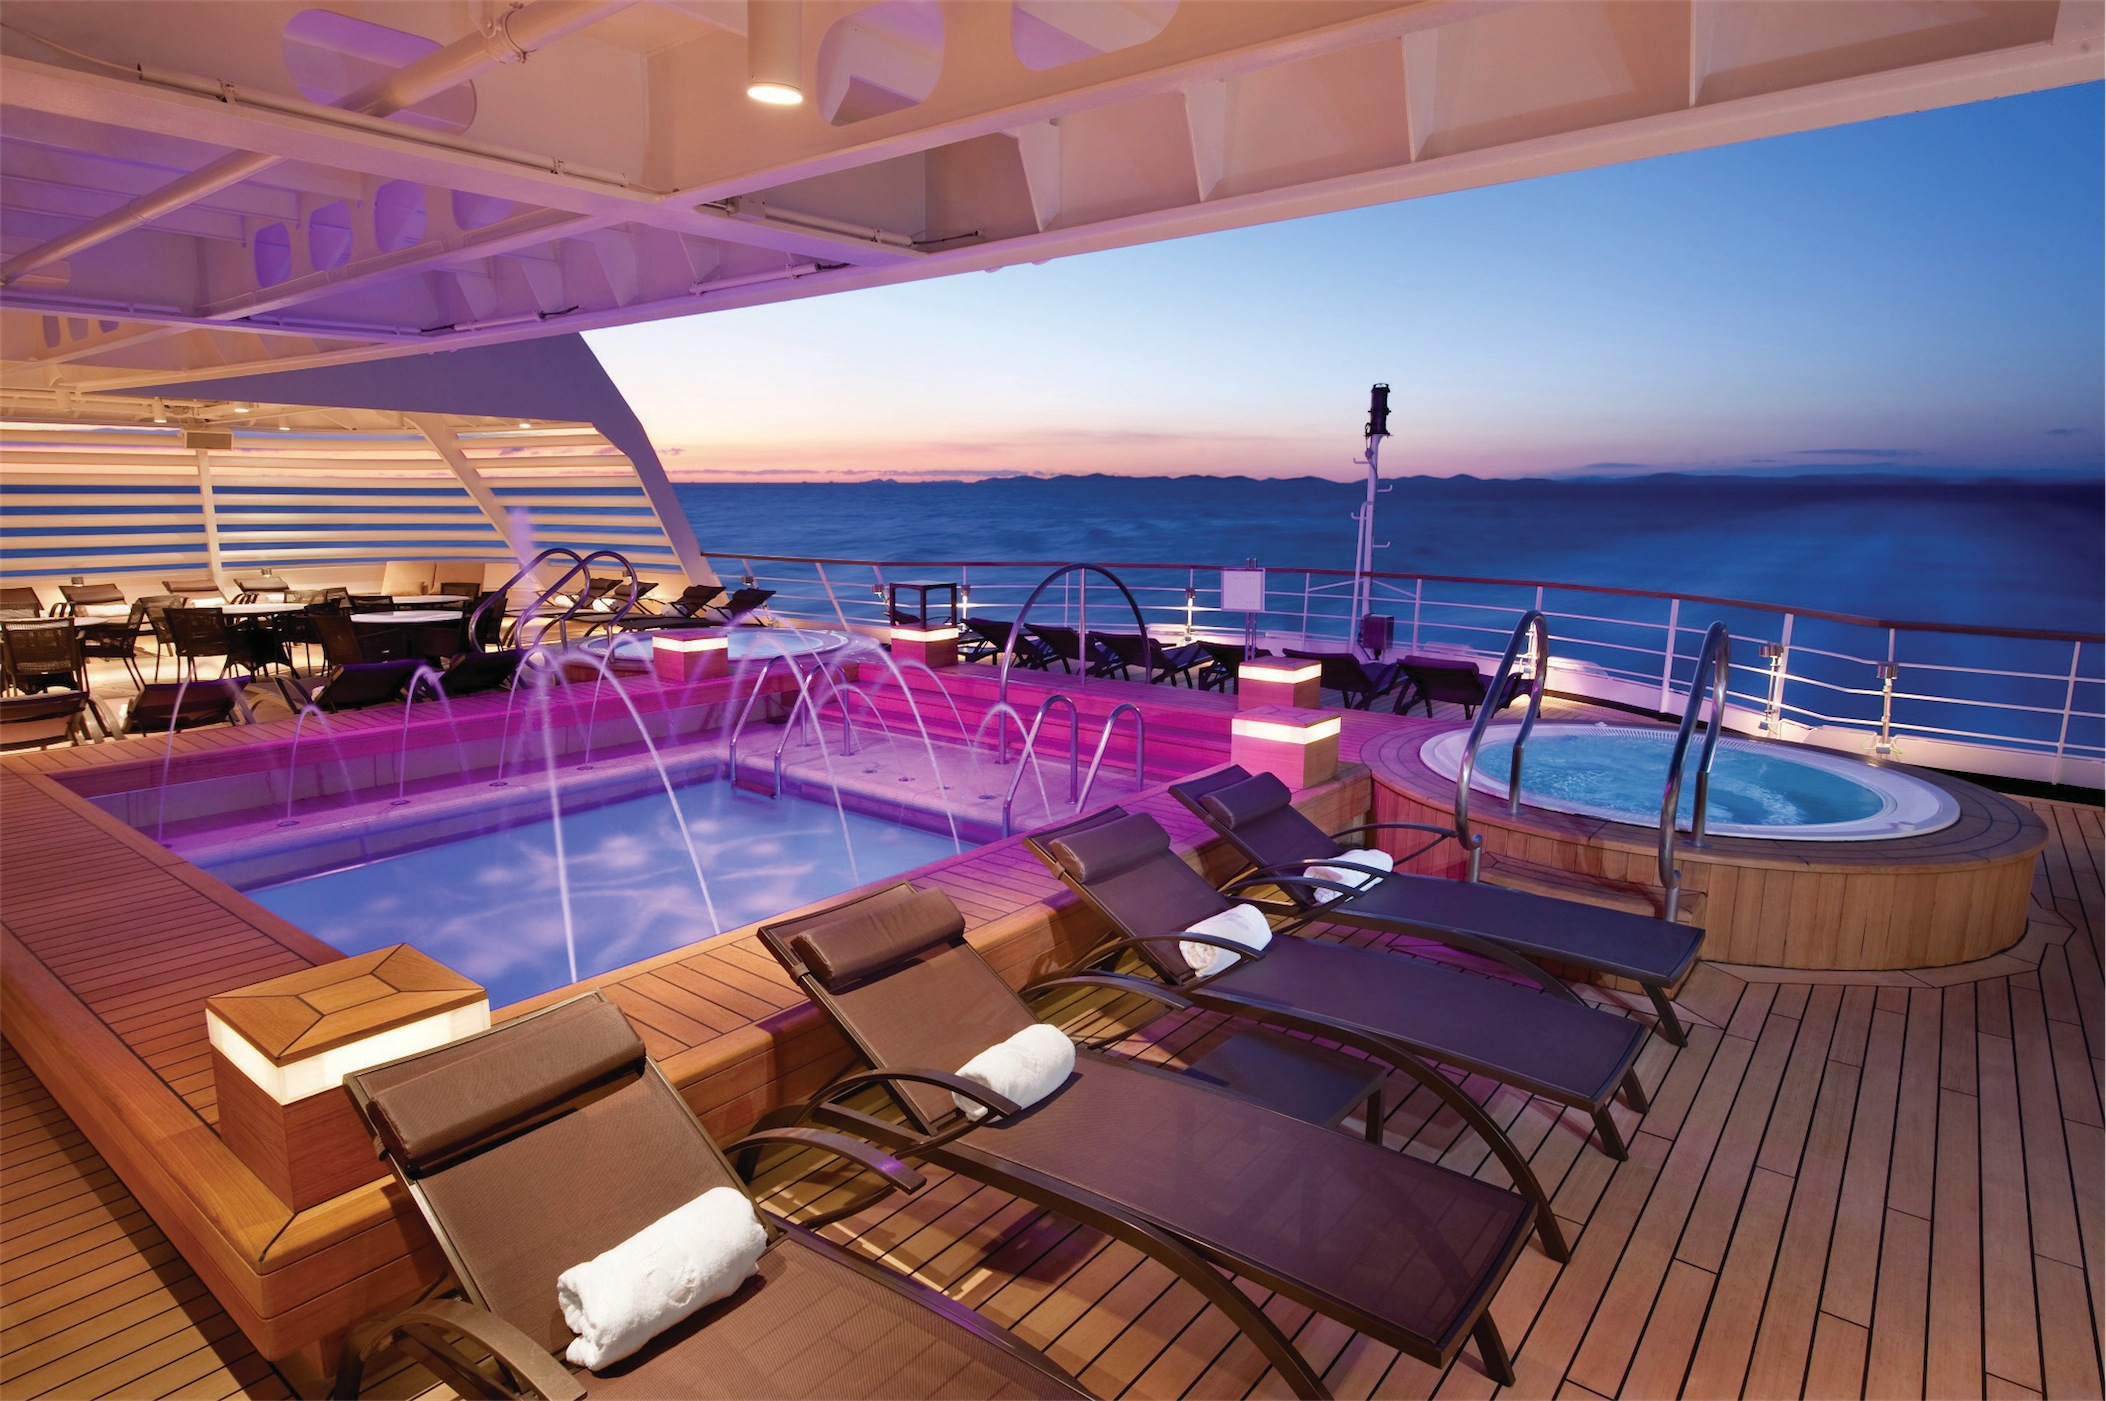 Seabourn Odyssey Class Exterior Aft Pool and Whirlpool.jpg